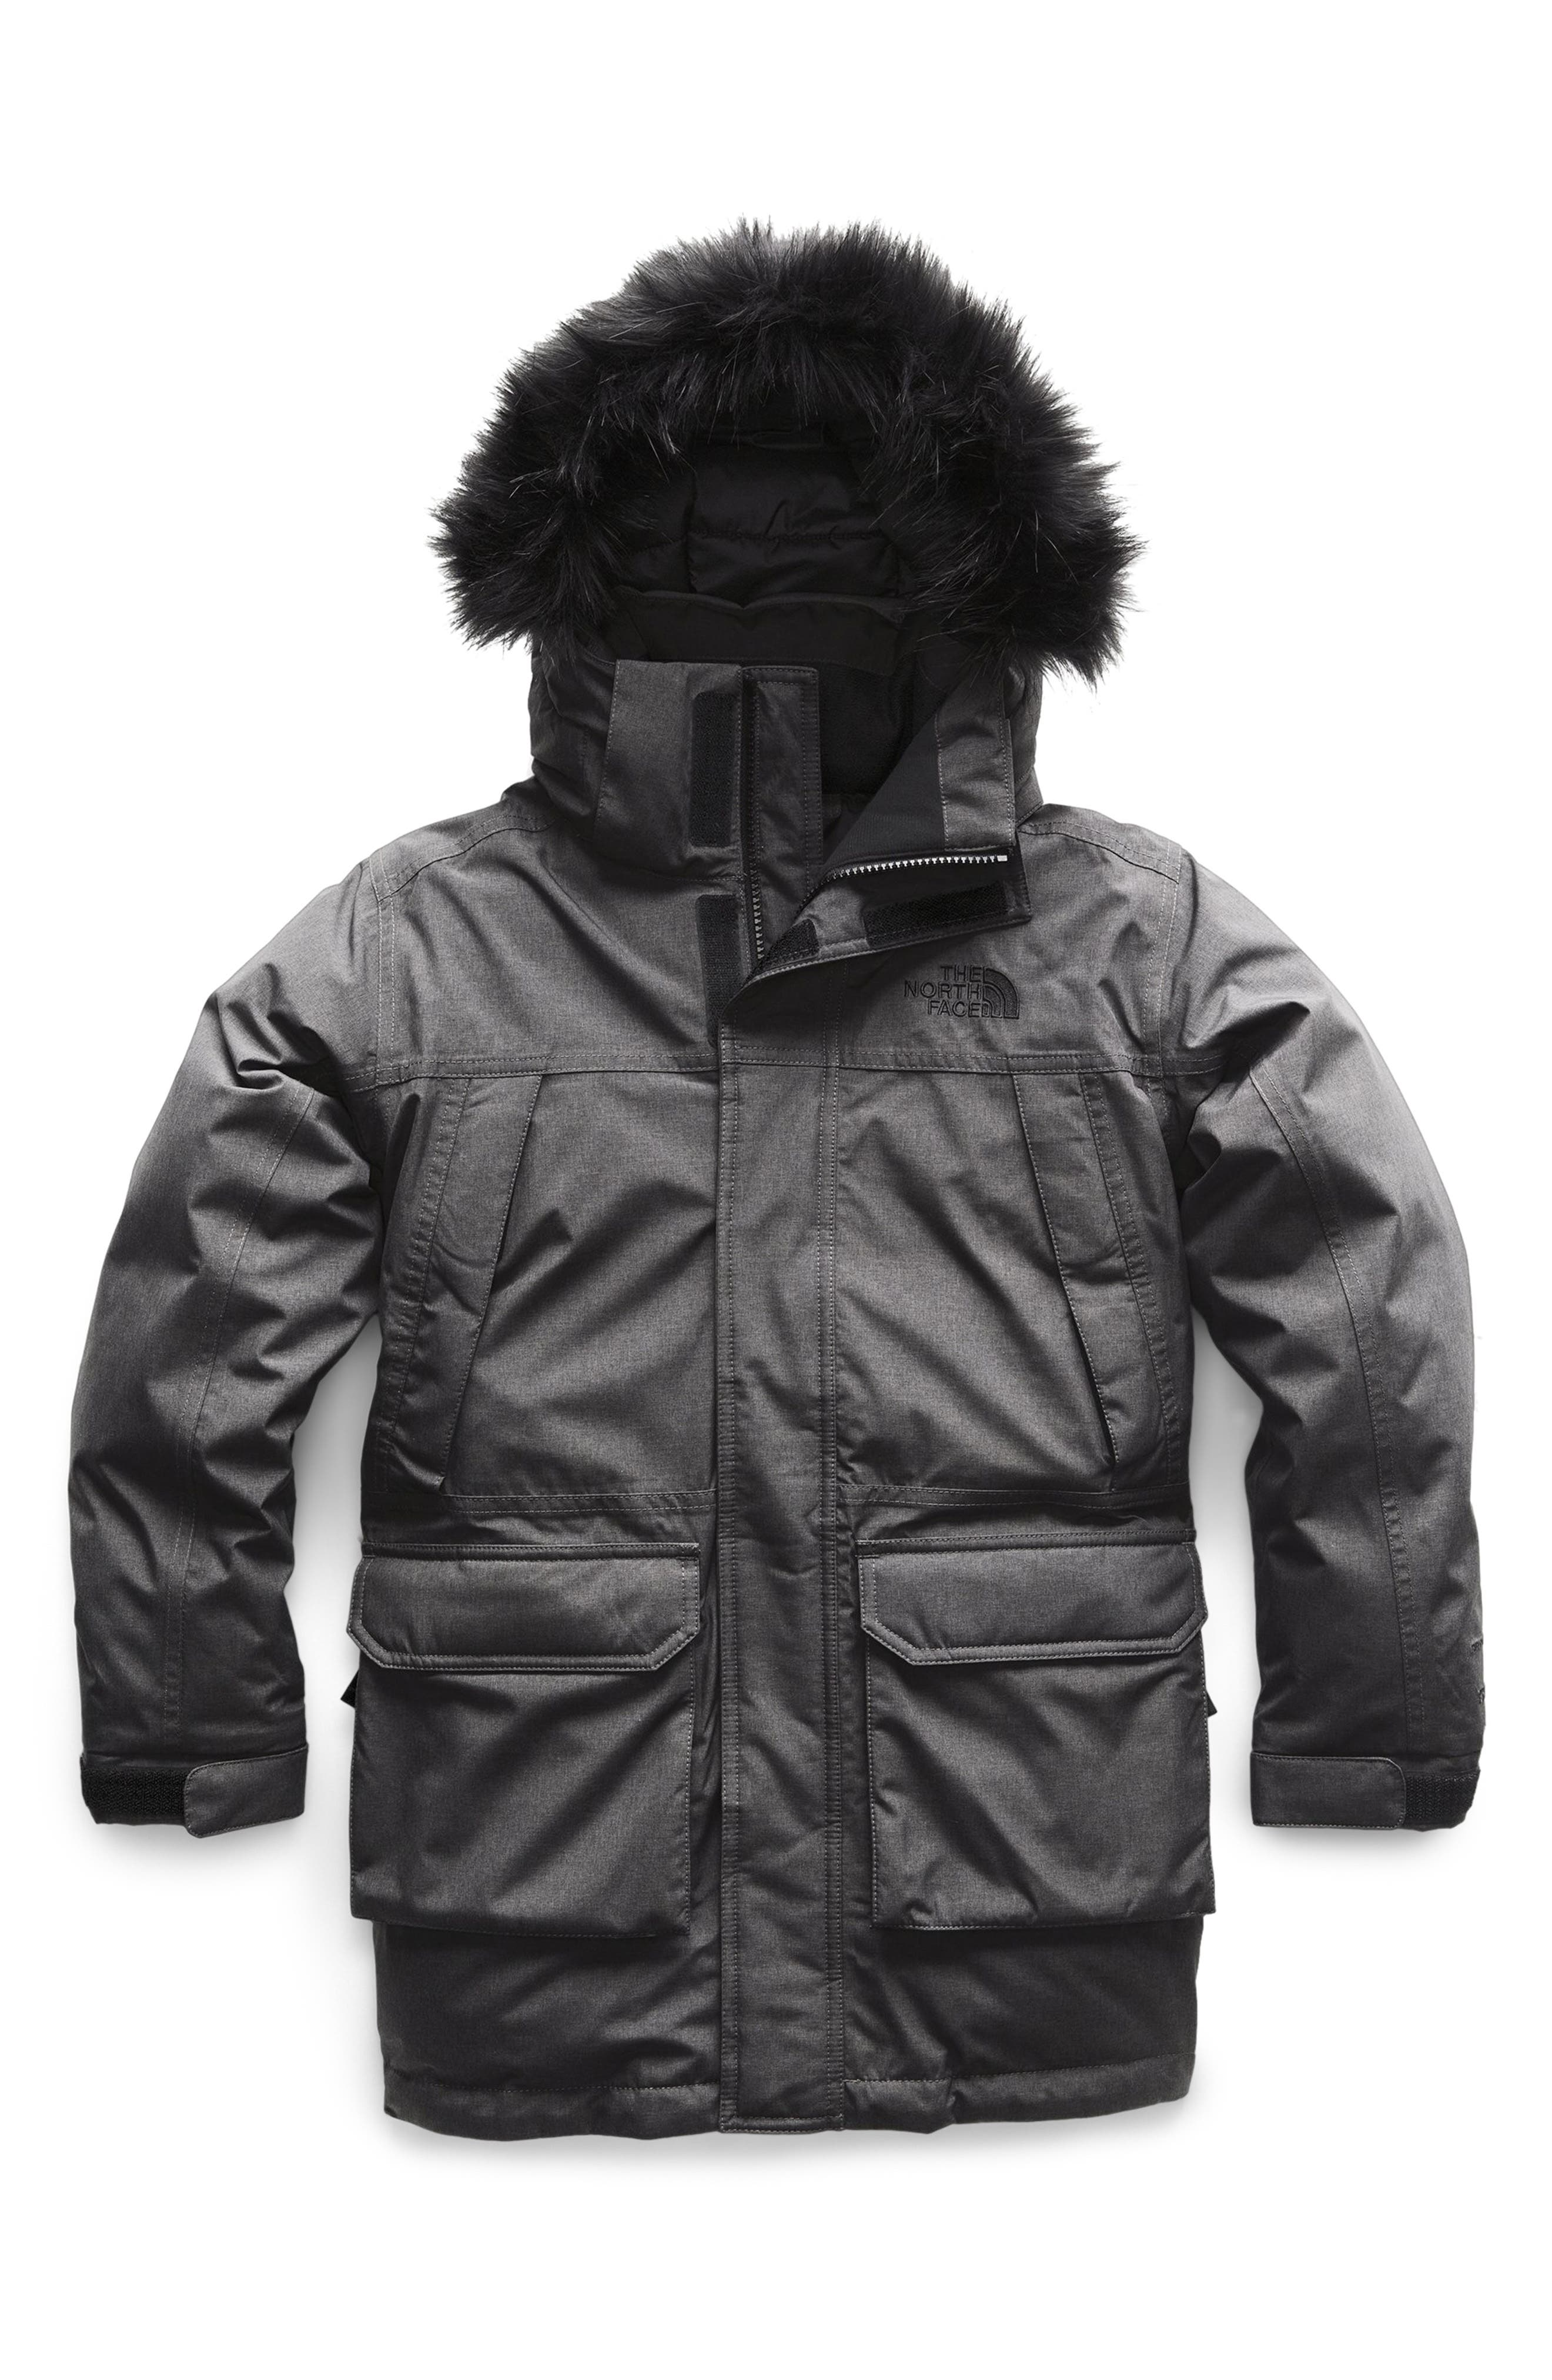 Boys The North Face Mcmurdo Waterproof 550 Fill Power Down Parka With Faux Fur Trim Size XL (1820)  Grey